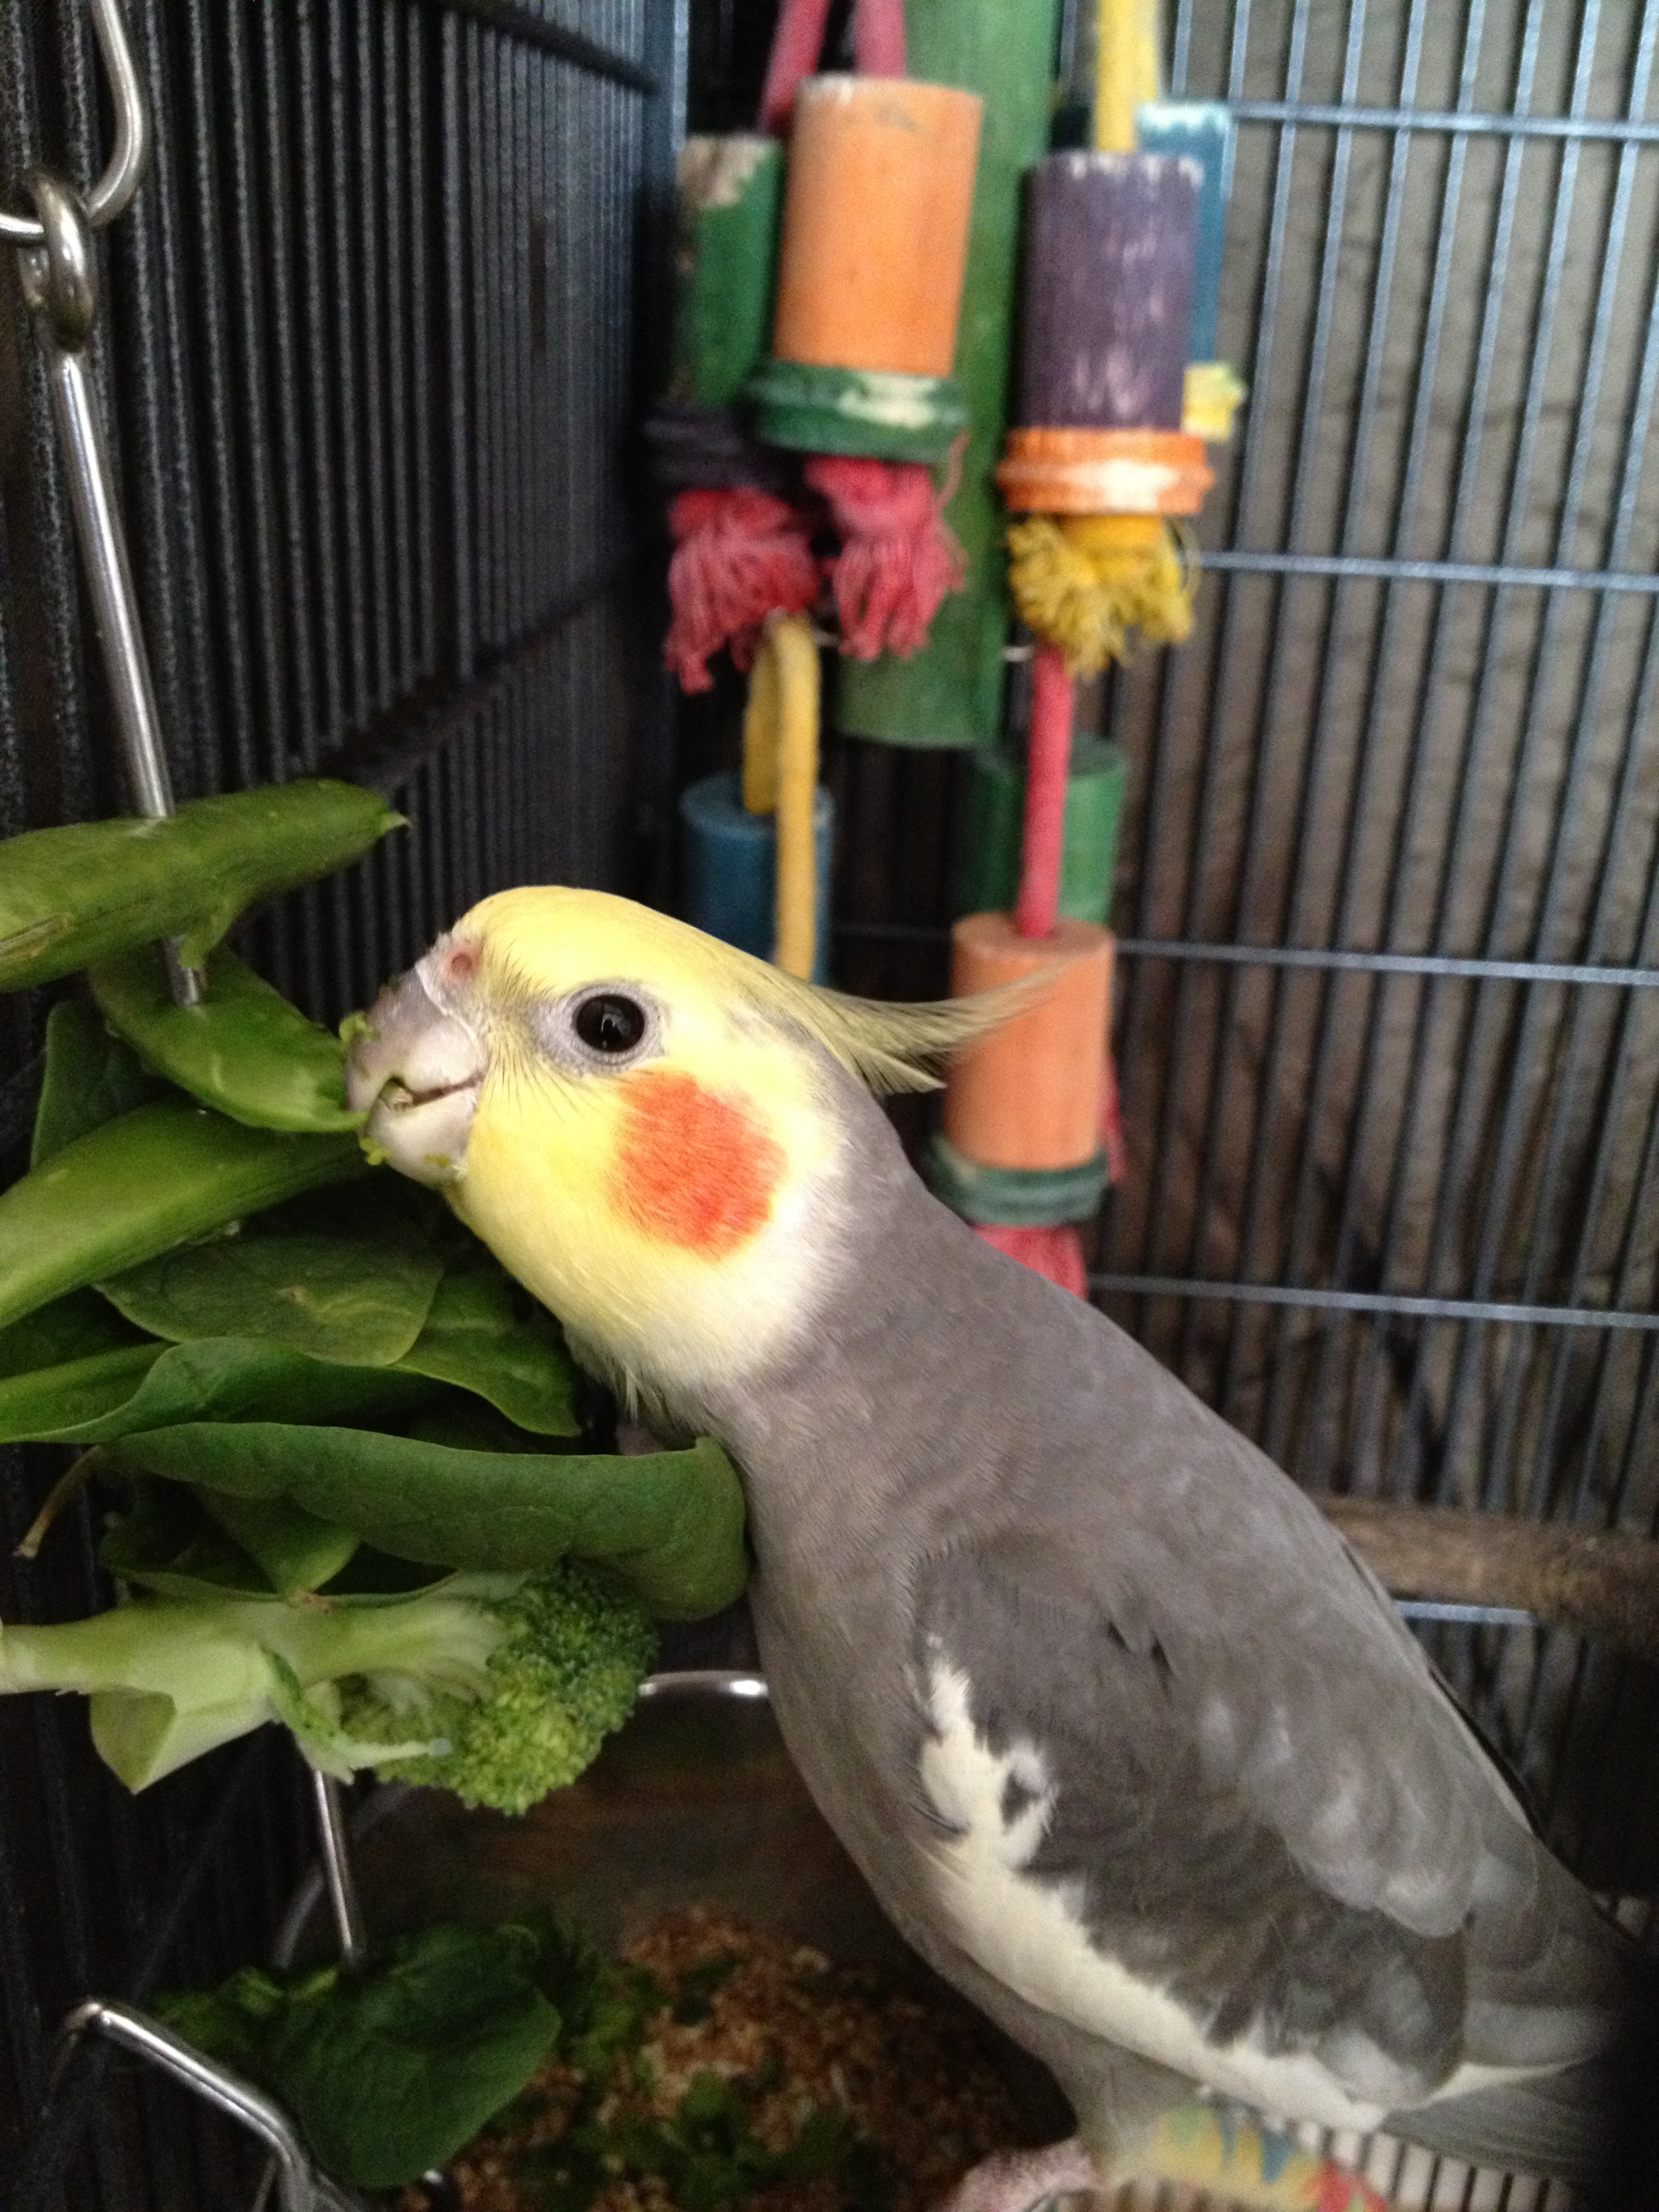 The Problem With Pet-Shop Birds  – Three Birds and a Cloud